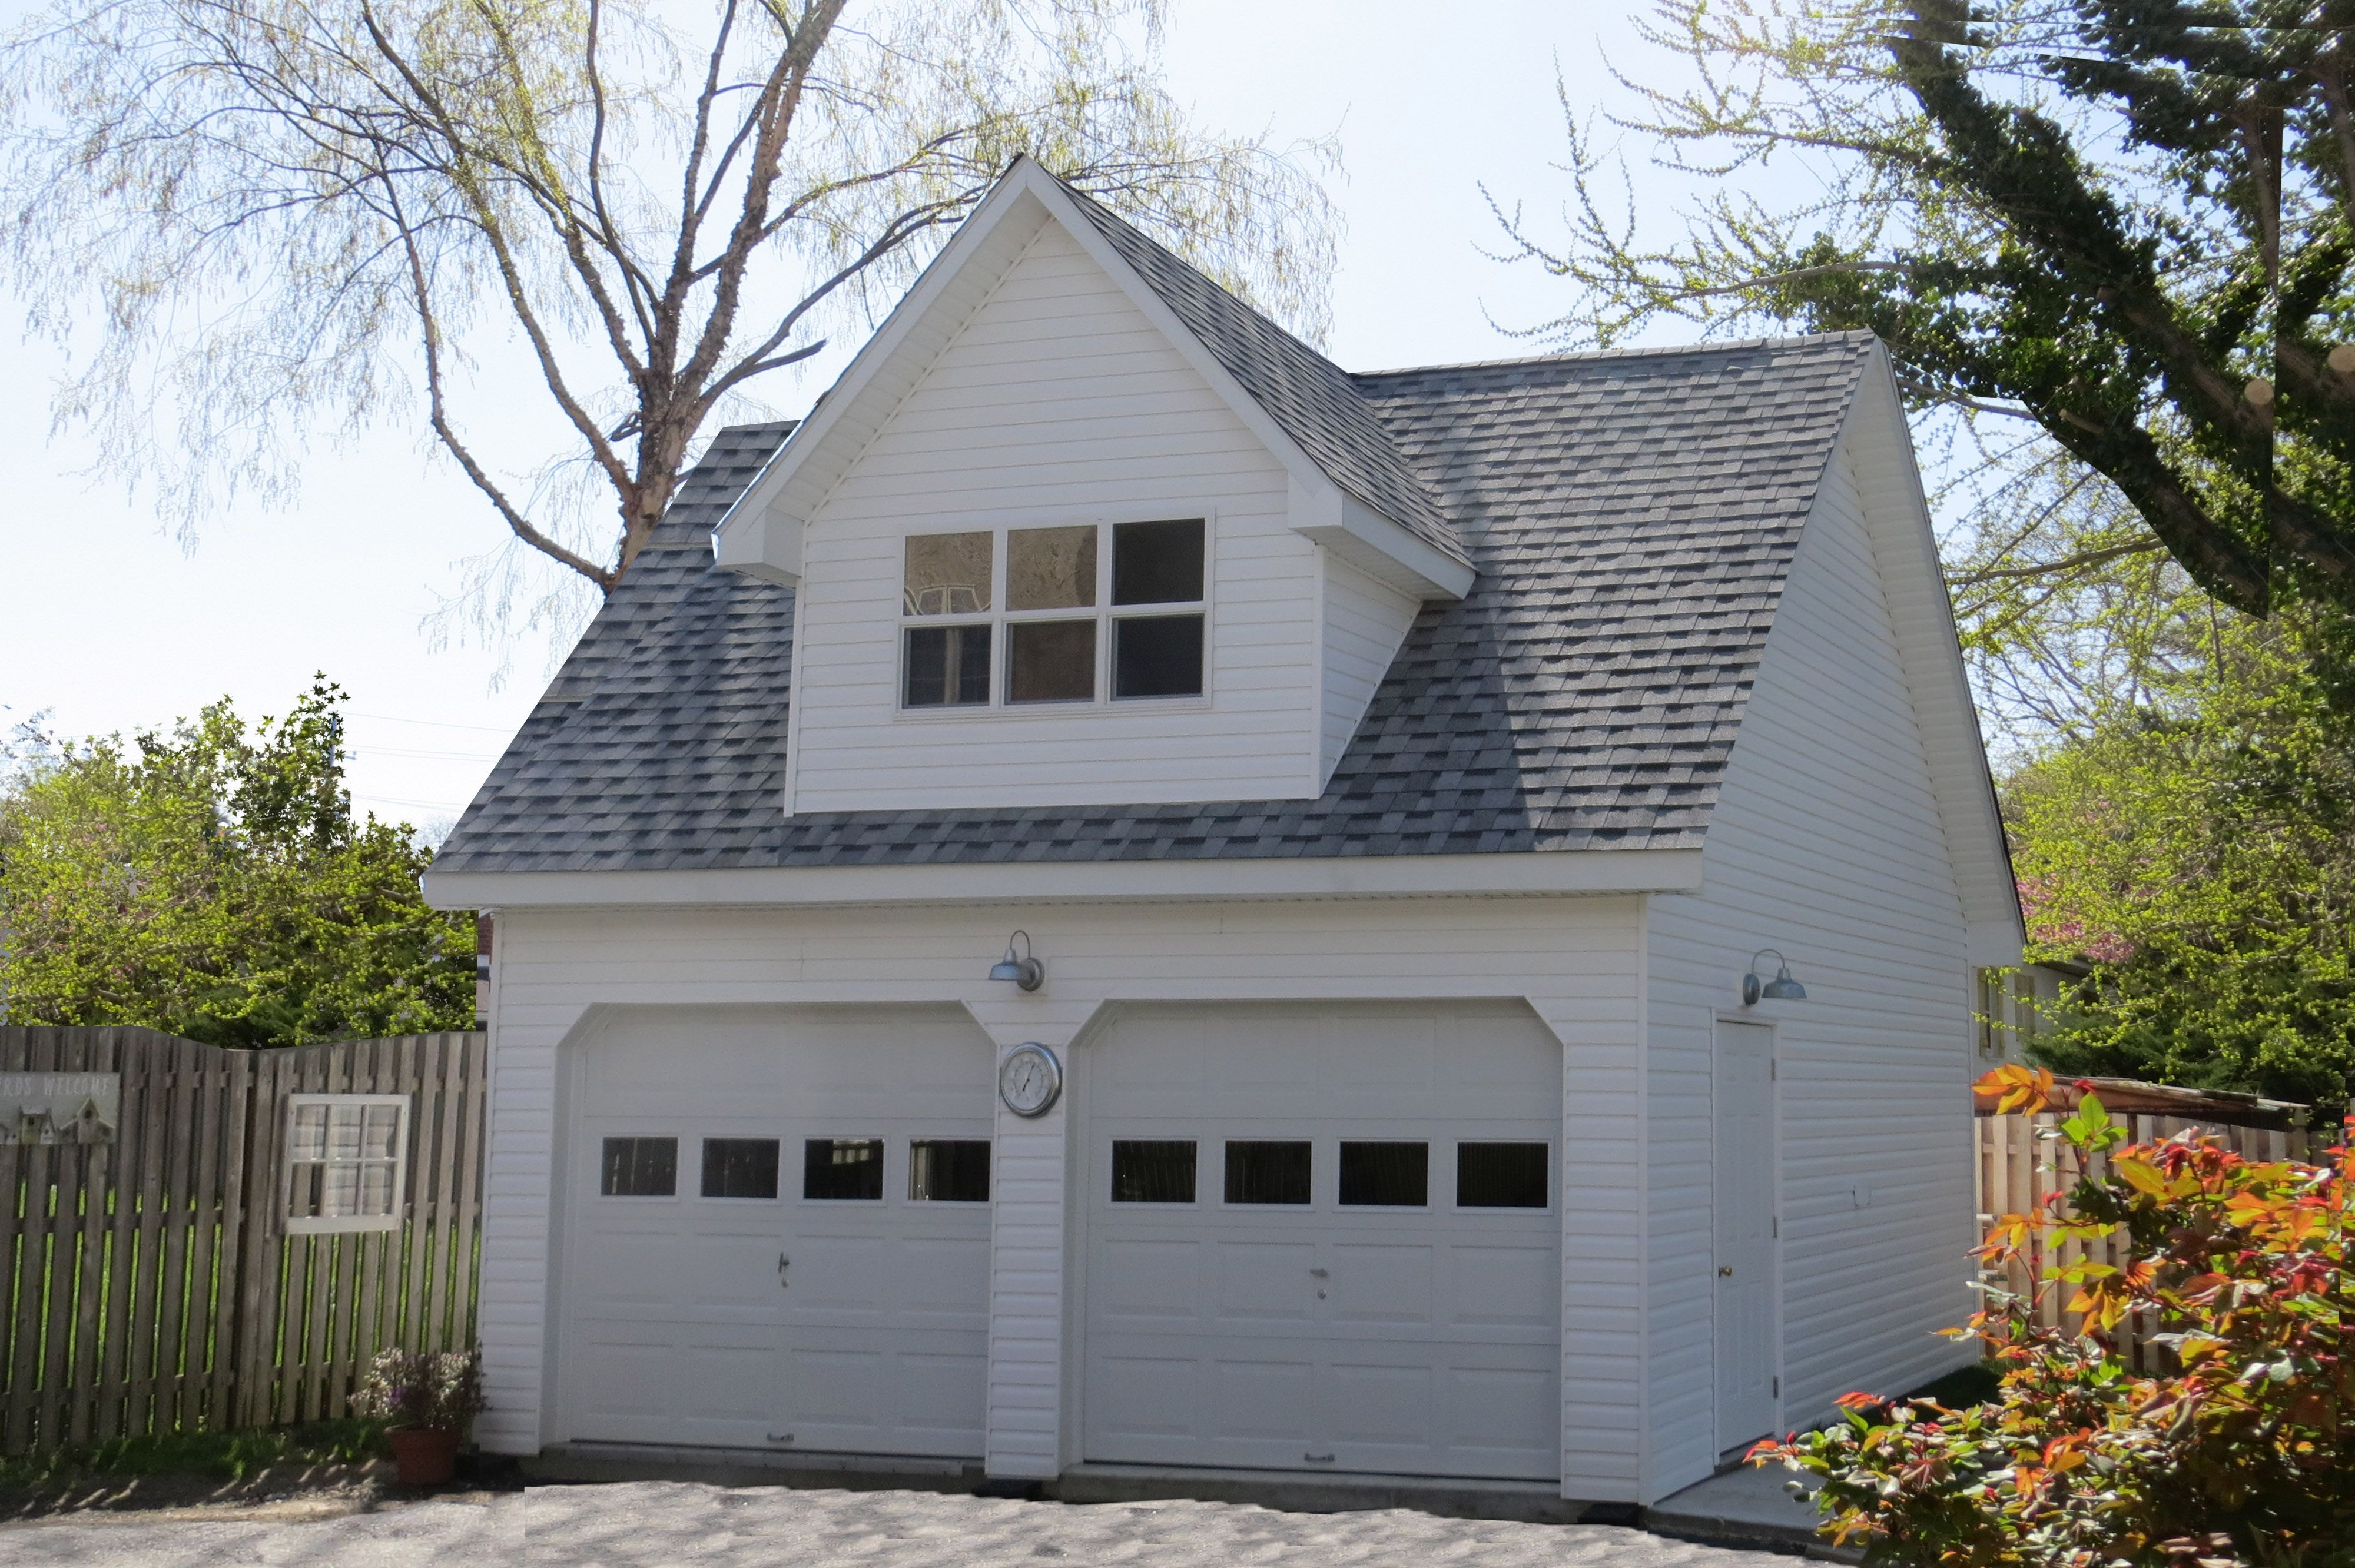 Legacy Two Story Garages | Car garage, Apartments and Garage design